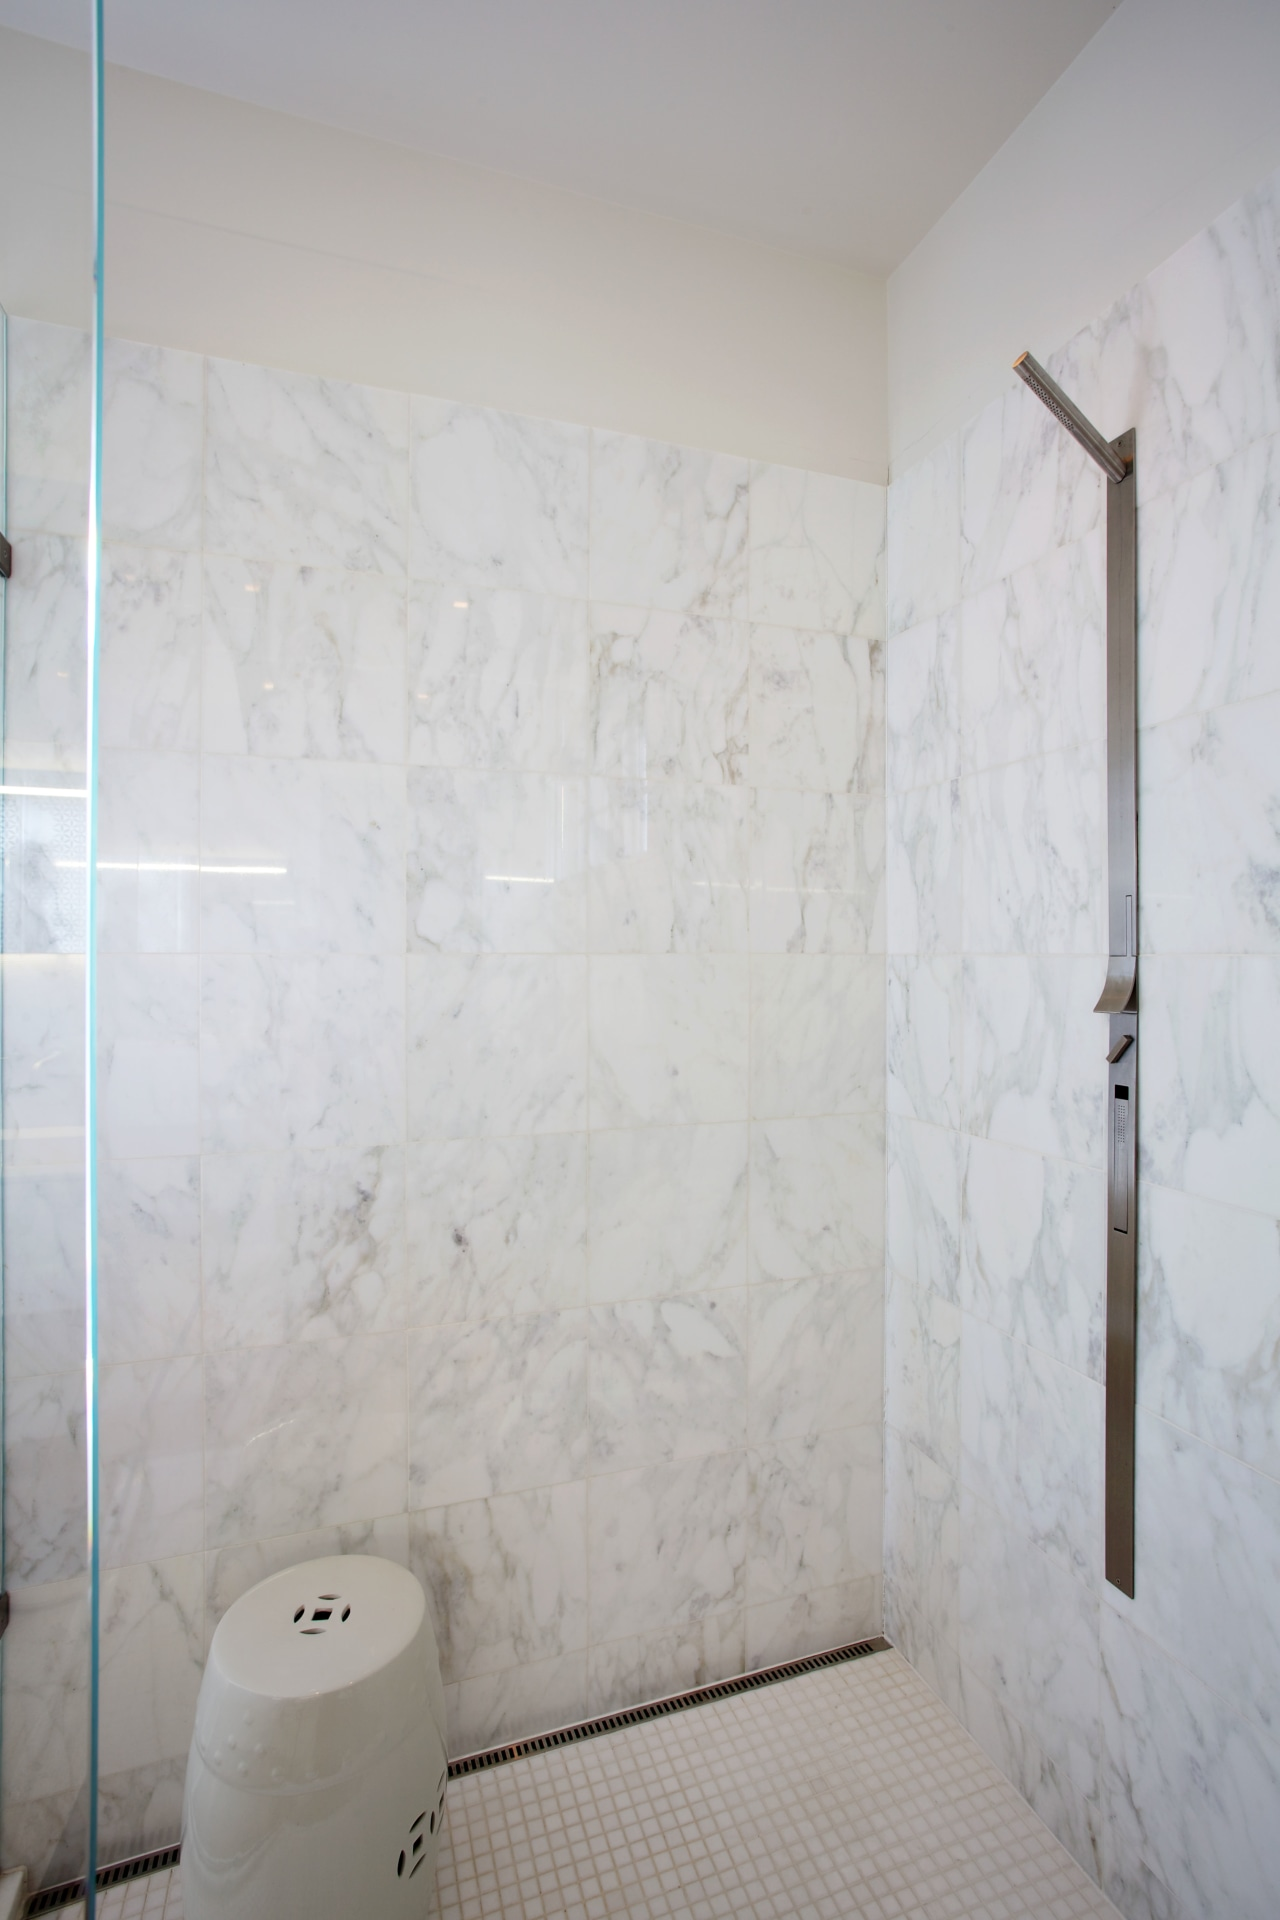 This shower stall has a Carrara marble lining bathroom, ceiling, floor, flooring, interior design, plaster, plumbing fixture, room, tile, wall, gray